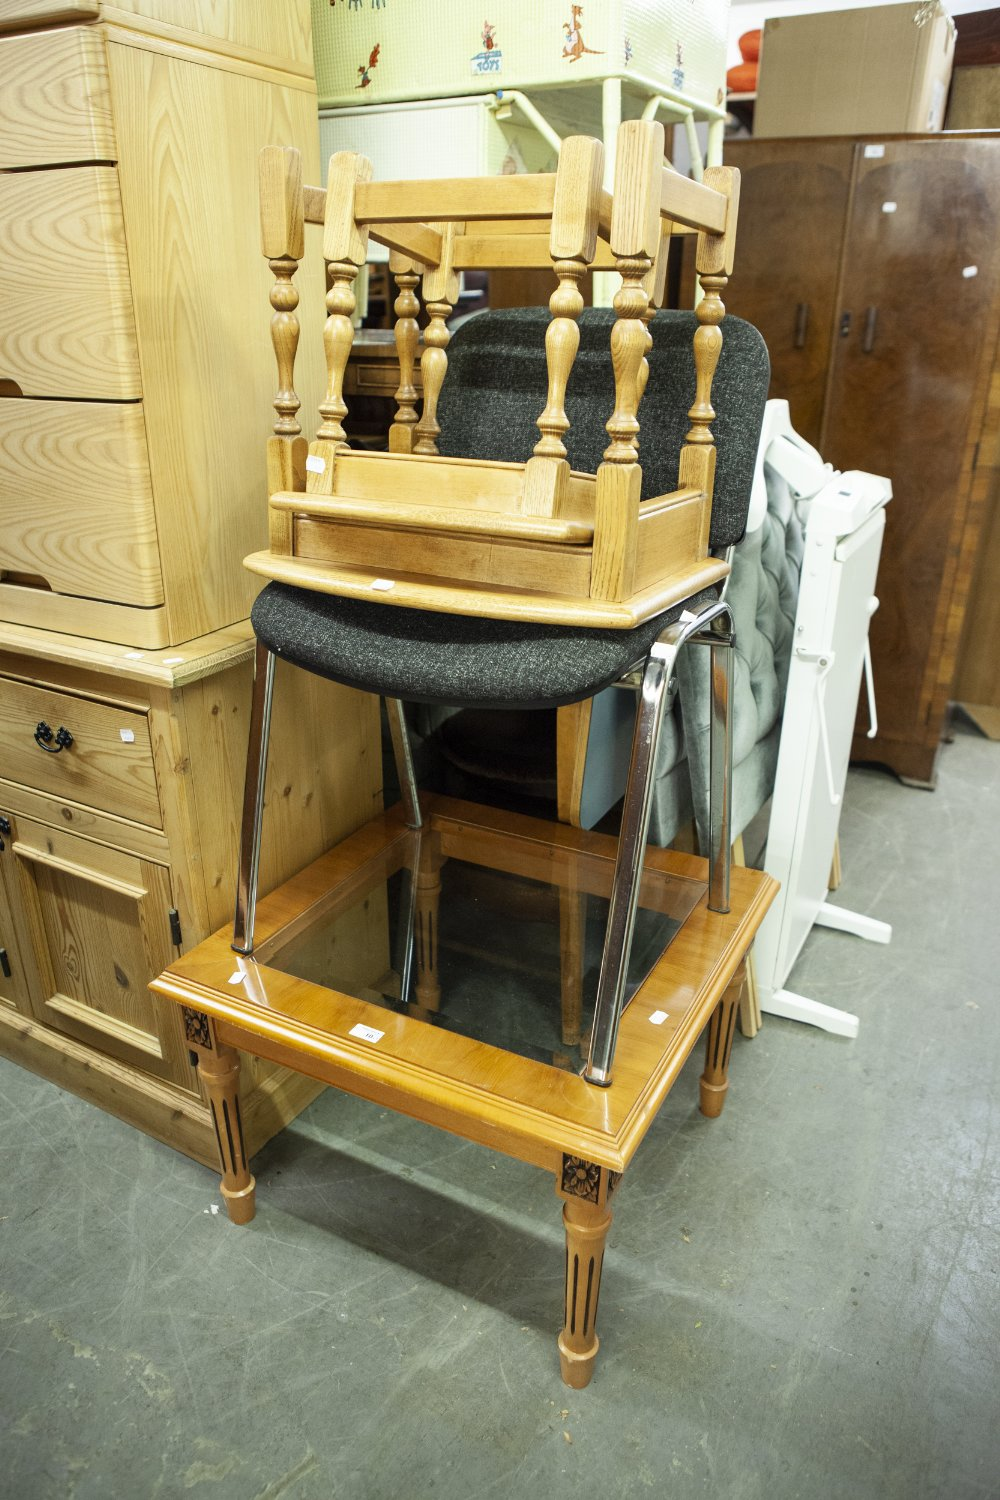 Lot 10 - YEW-WOOD SQUARE COFFEE TABLE, BLACK OFFICE CHAIRS, NEST OF TWO TABLES AND A TROUSER PRESS